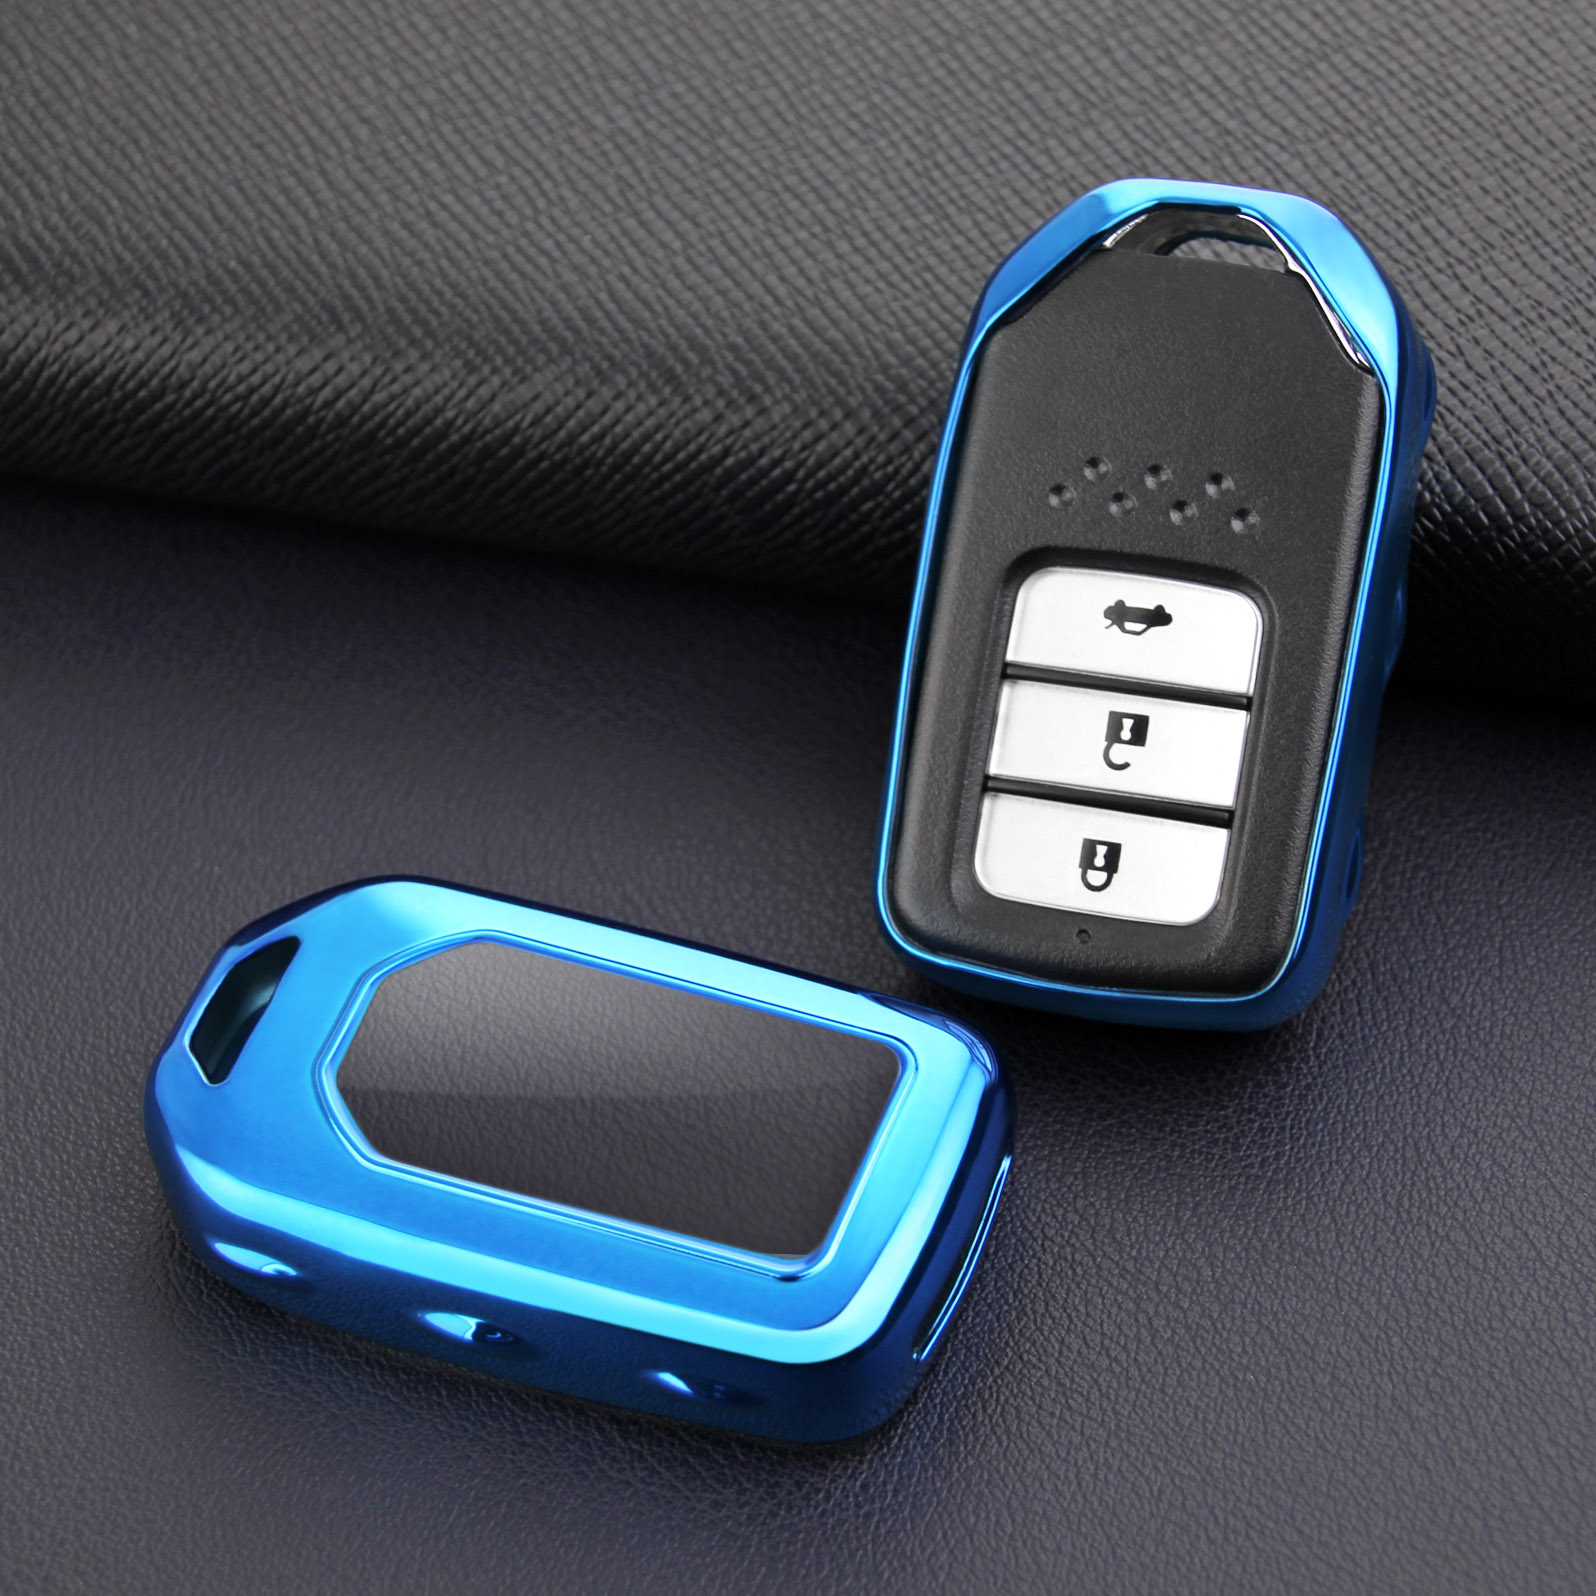 Glossy Blue For Honda Accord Civic CR V Fit HR V Odyssey Pilot Clarity Insight Smart Car Key Durable Protector Case Holder Cover|Key Case for Car| |  - title=